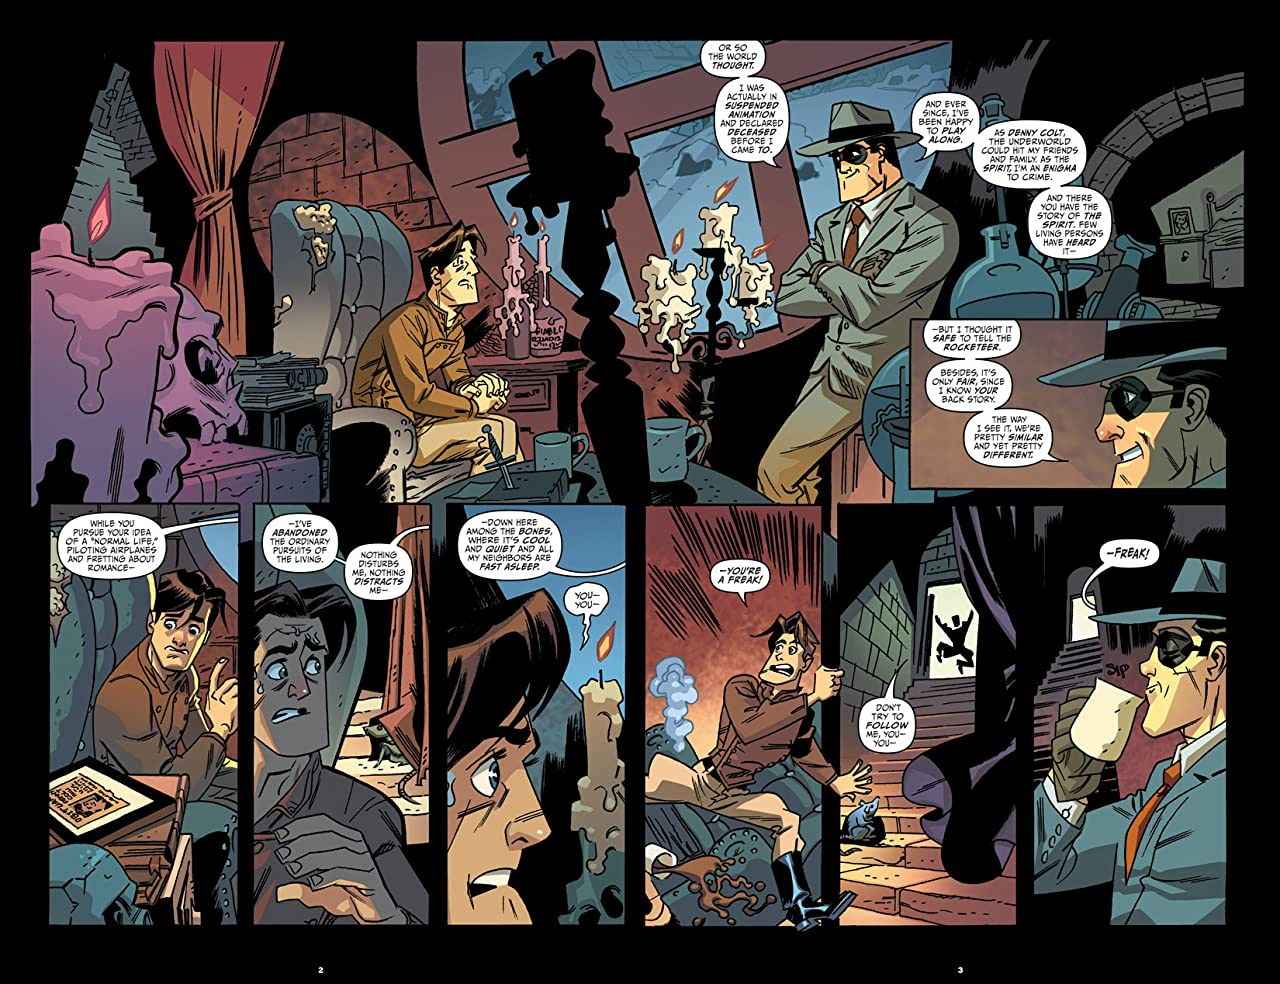 Rocketeer/The Spirit: Pulp Friction! #3 (of 4)